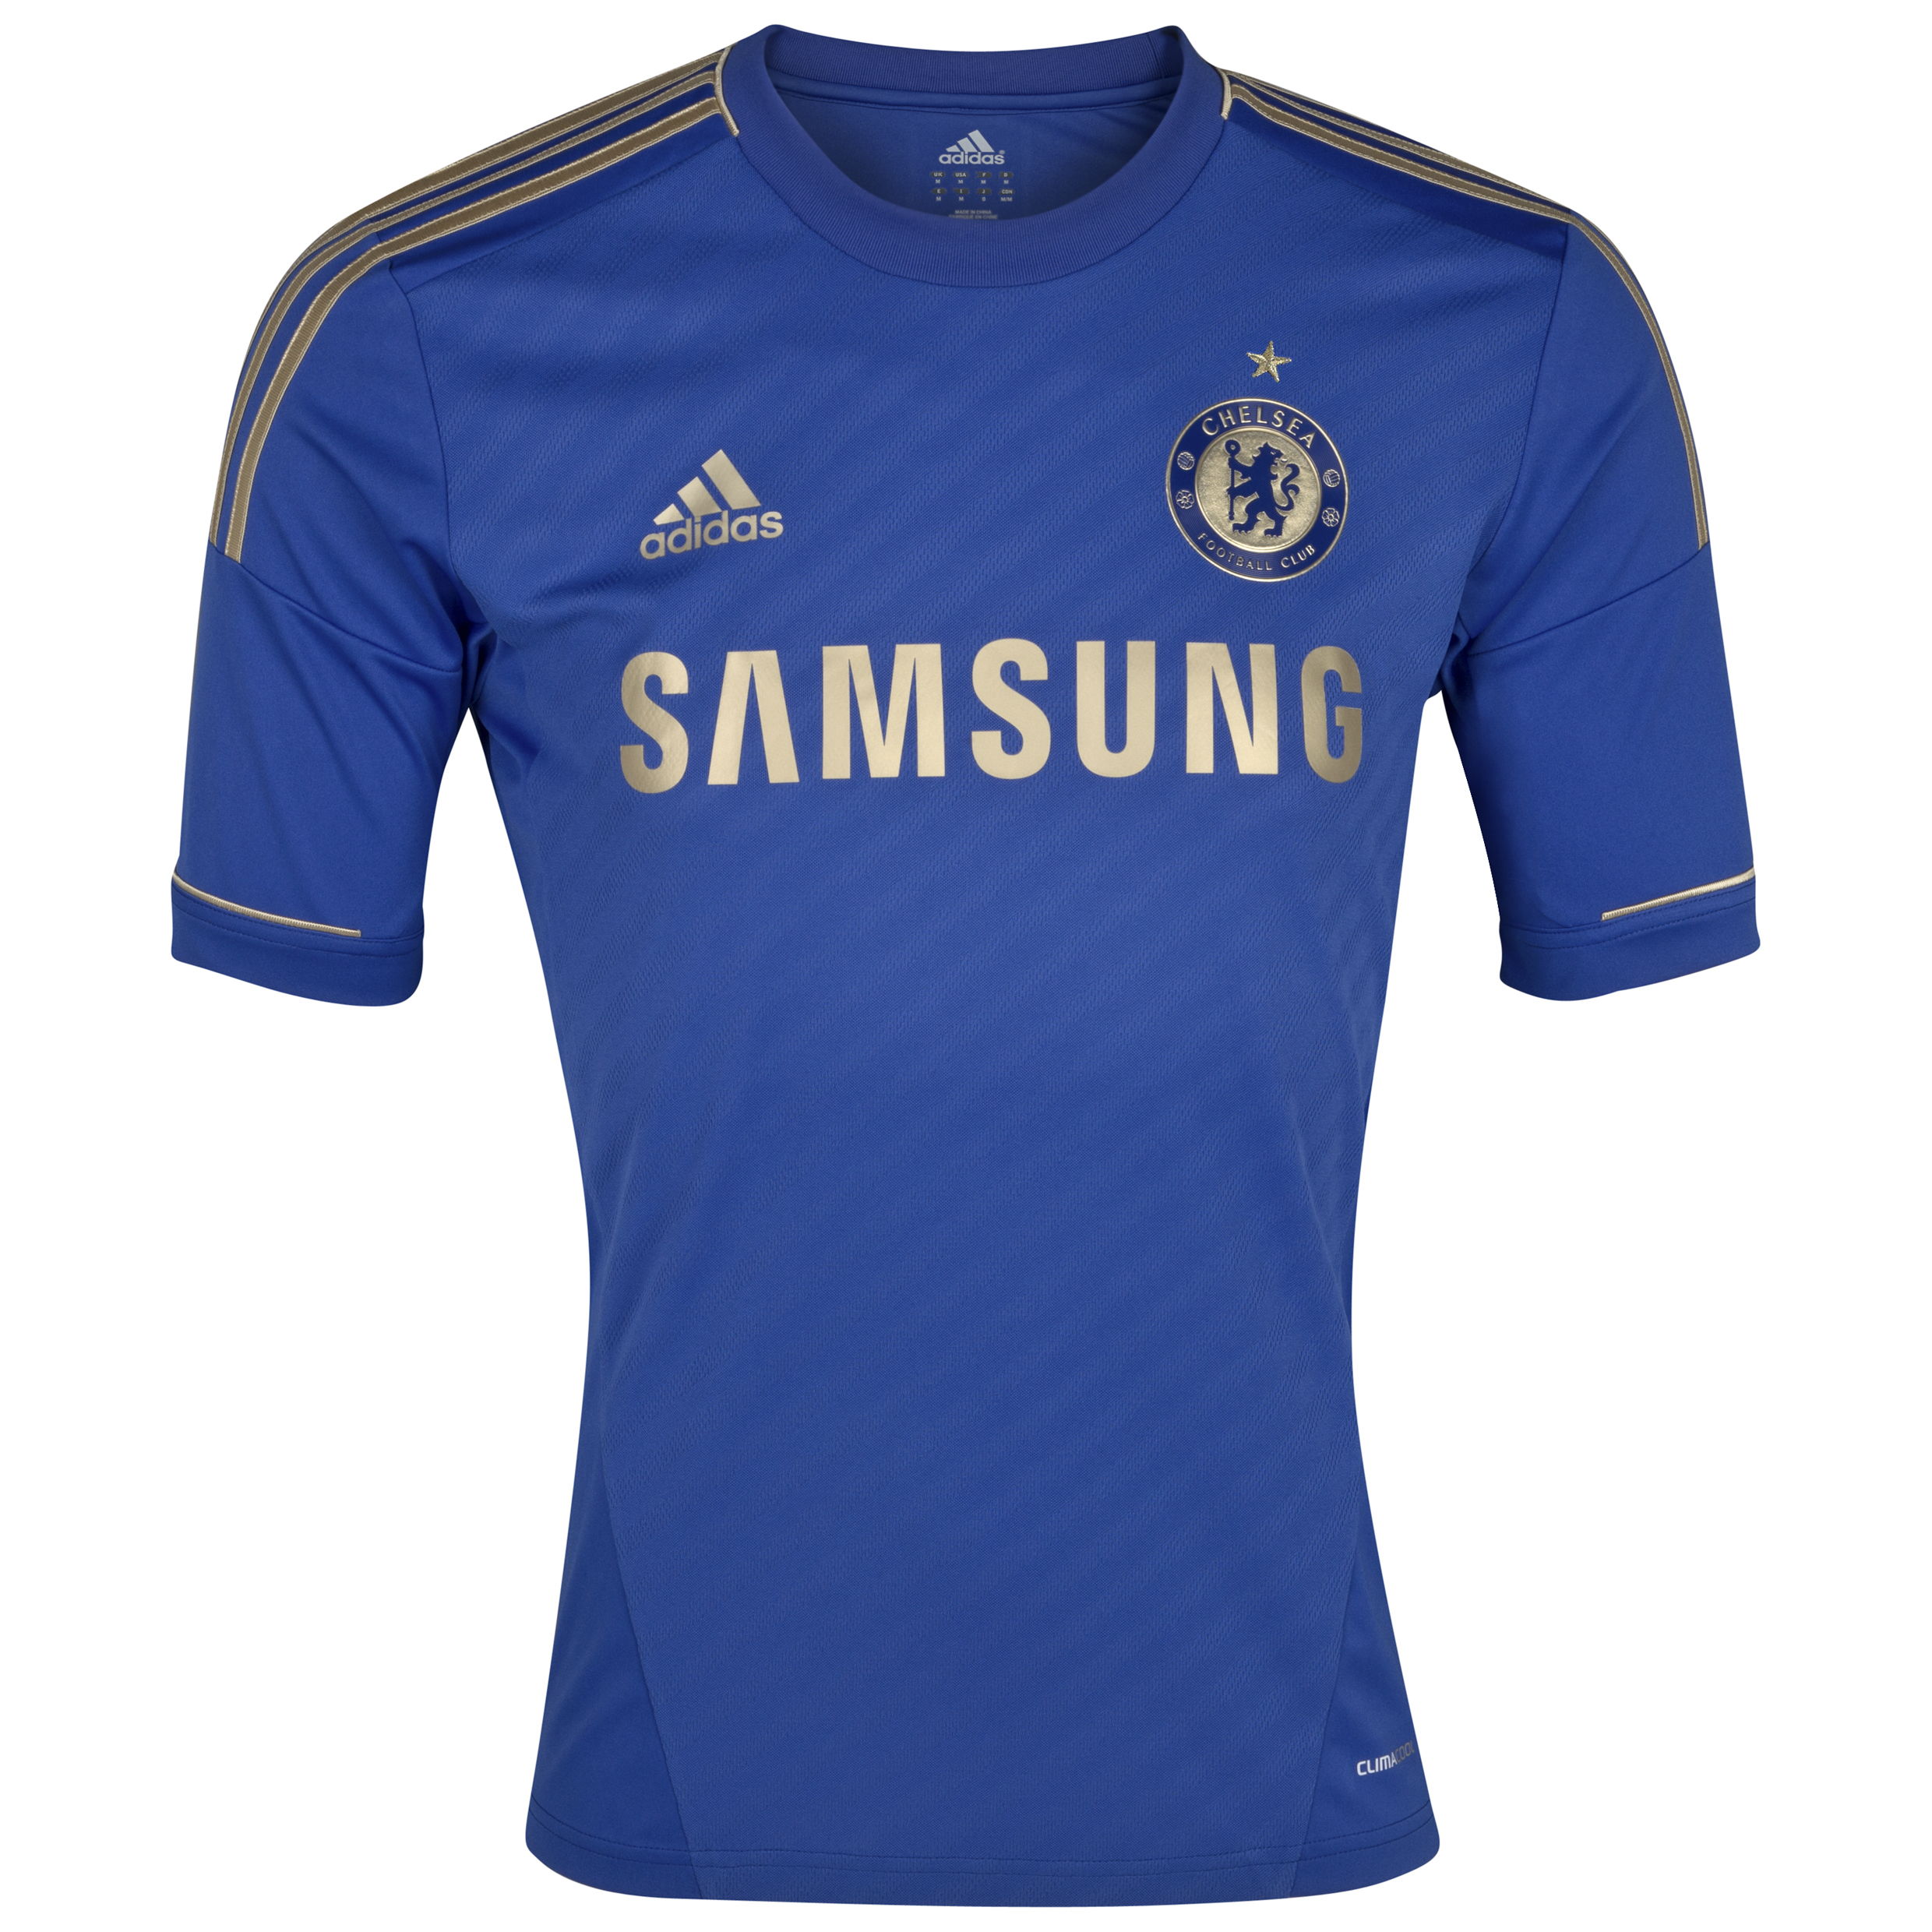 Chelsea Home Shirt 2012/13 Including Gold Star